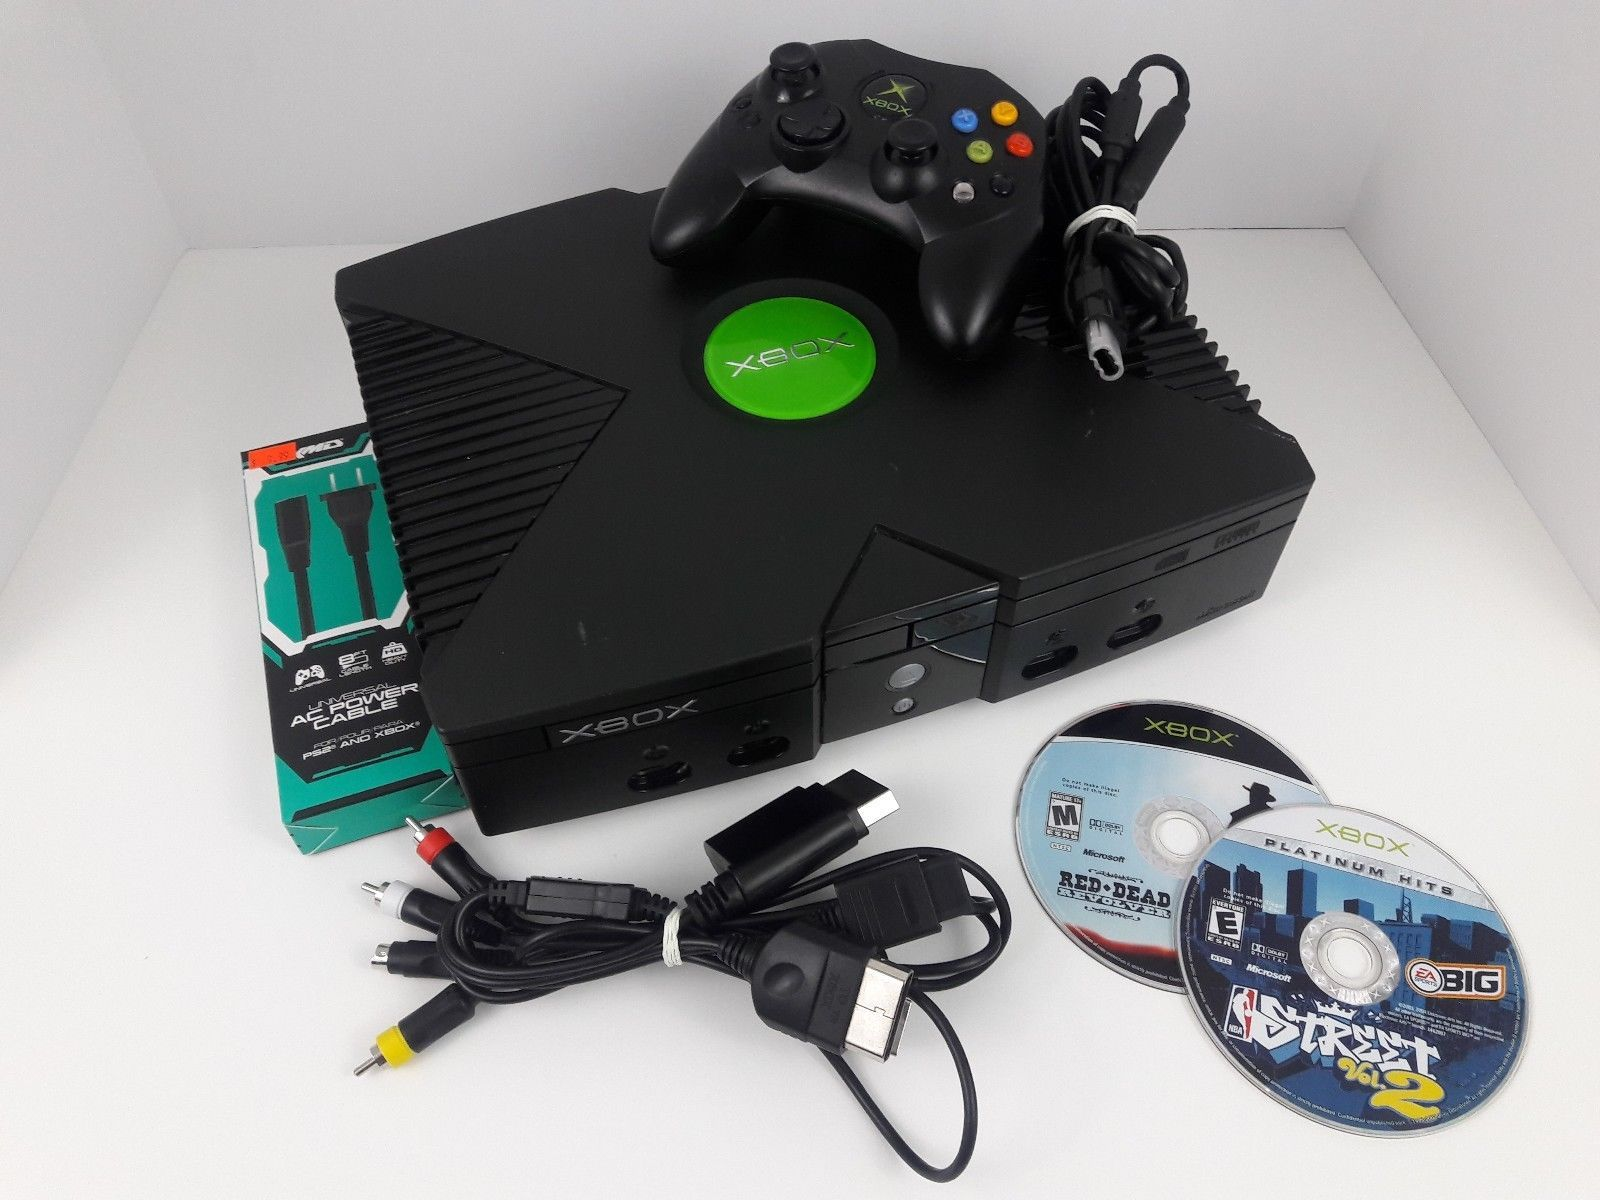 ORIGINAL MICROSOFT XBOX AC Adapter Wired Xbox Controller Red Dead ...